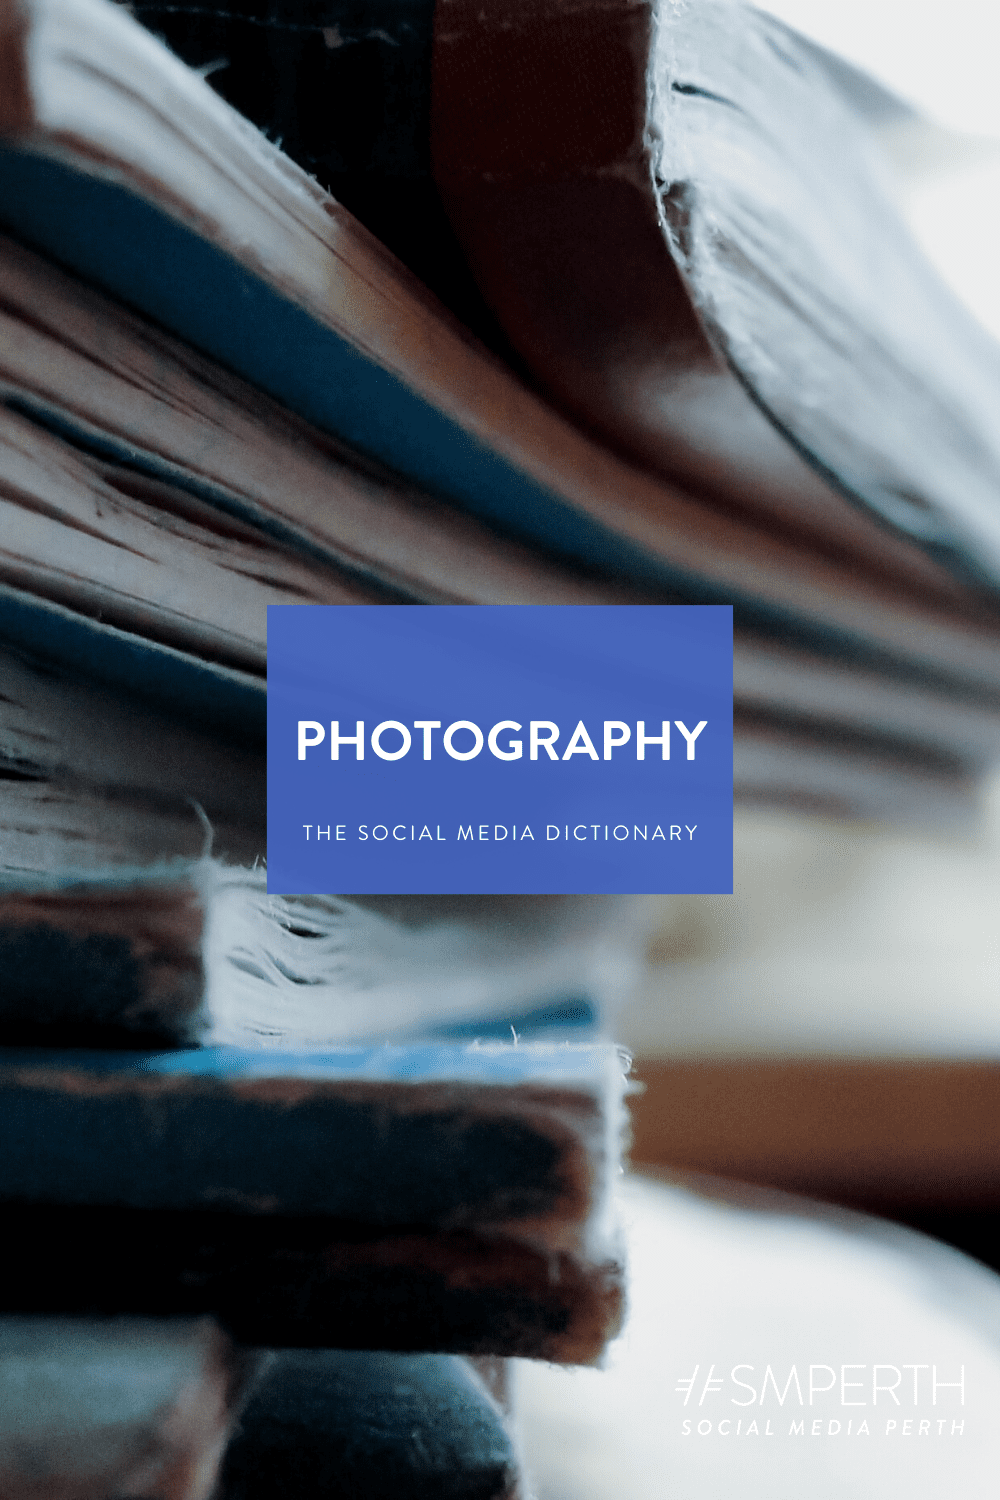 The Social Media Dictionary: The Photography Edition